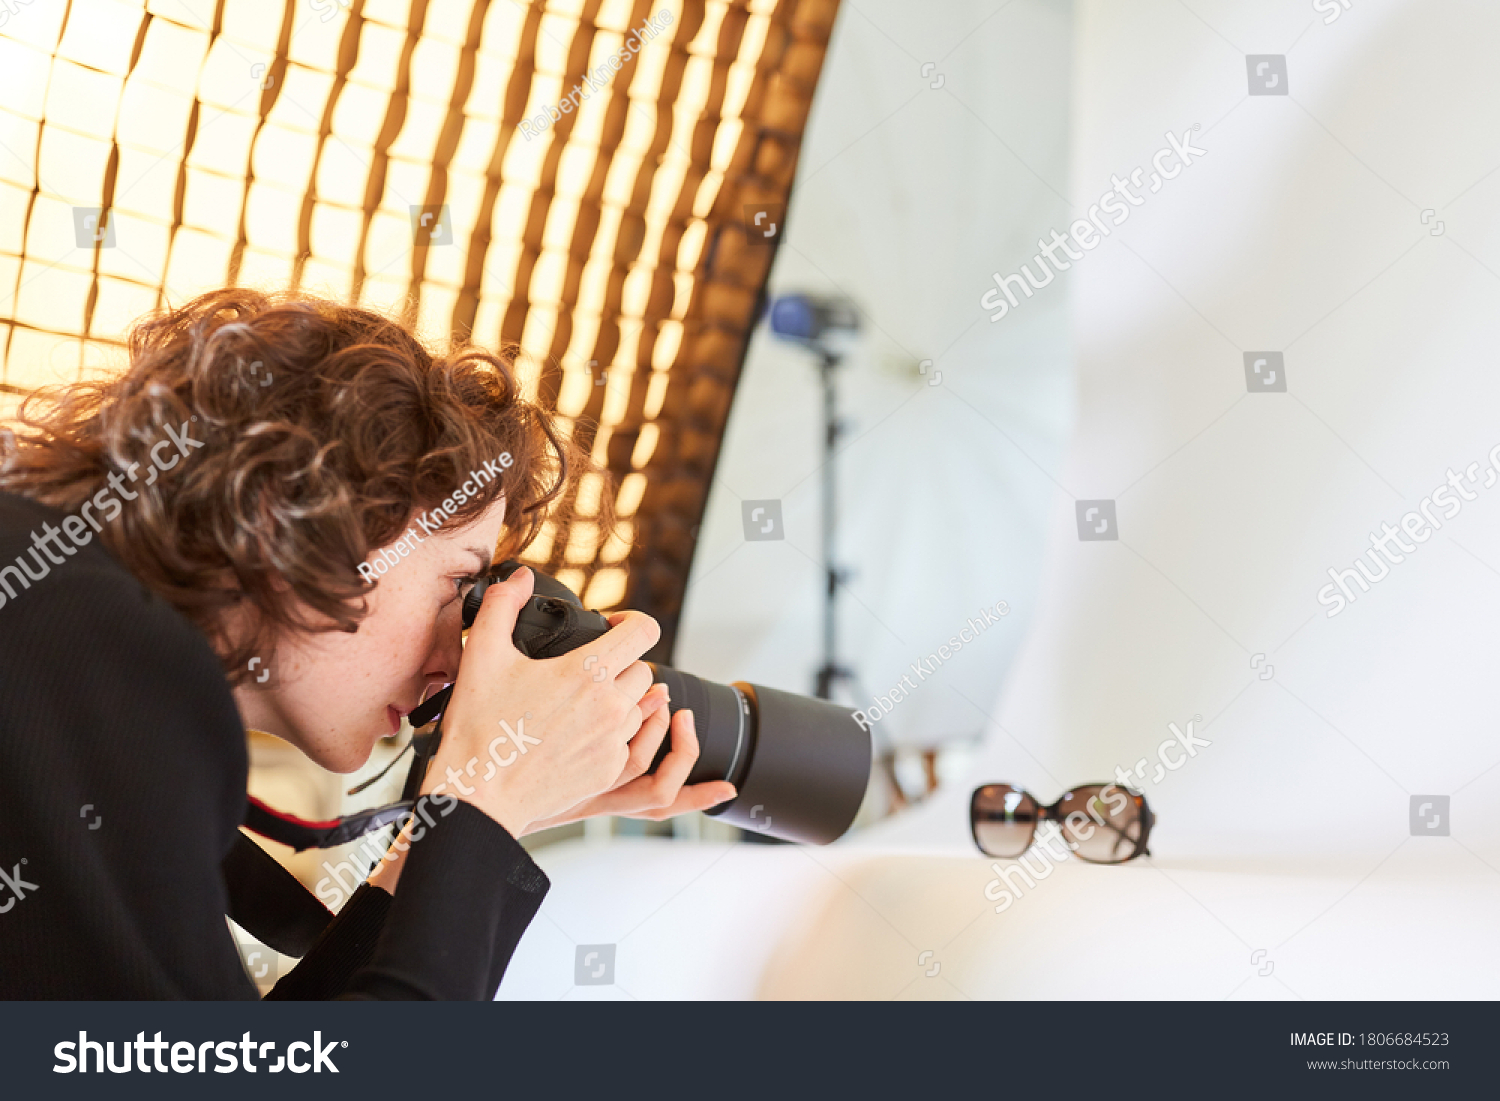 Photographer with camera photographs a pair of glasses for product photography #1806684523